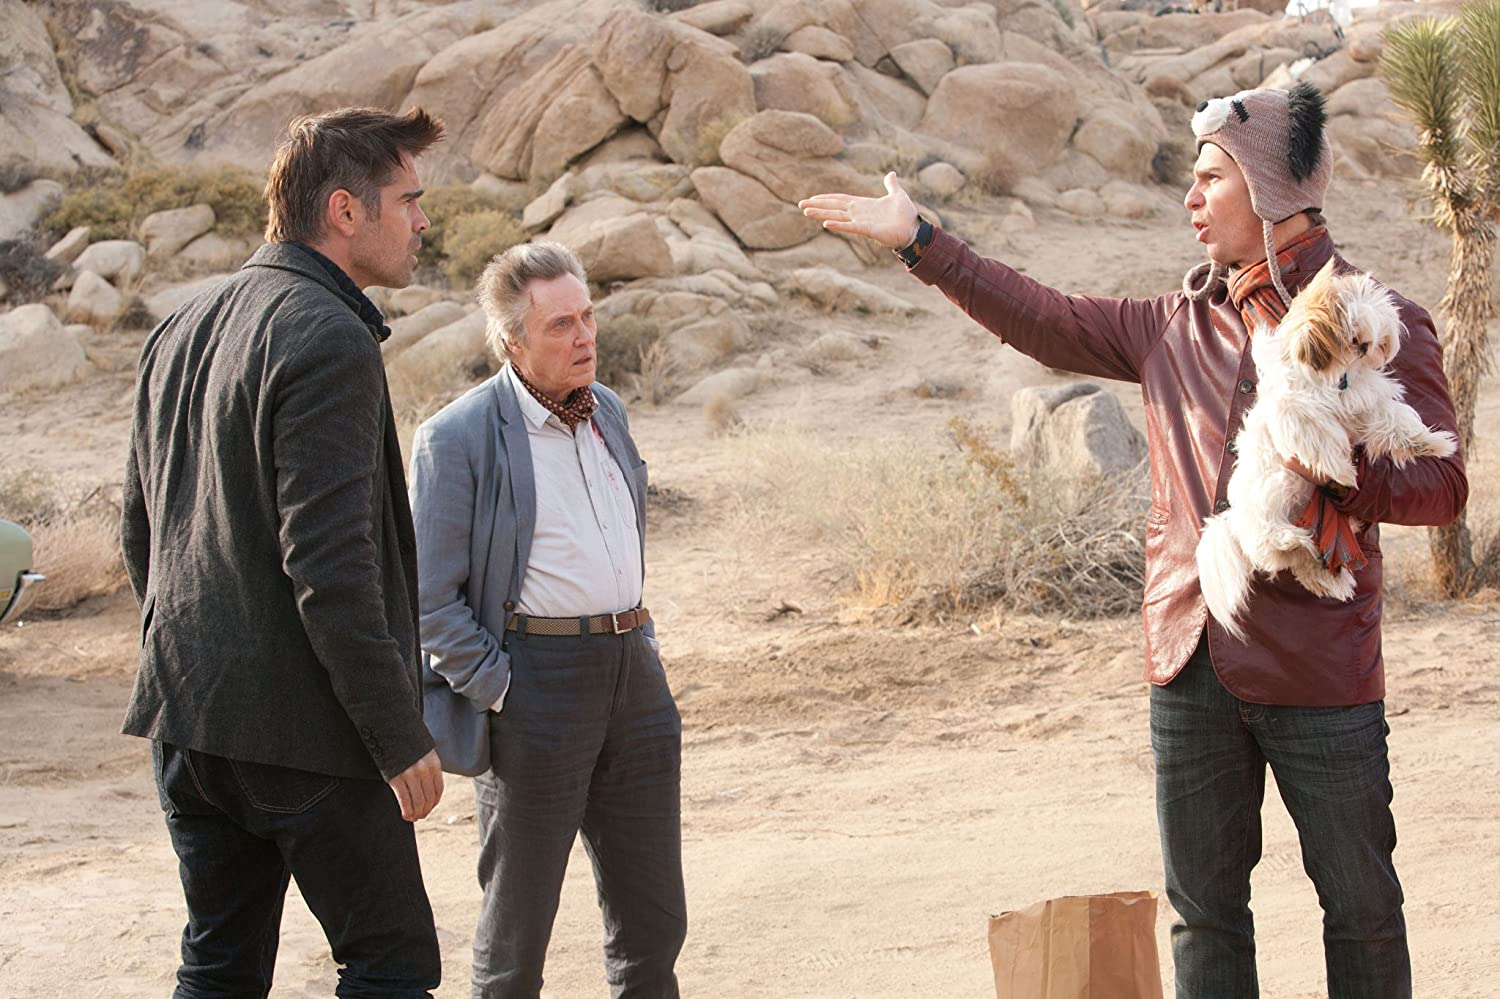 Christopher Walken, Sam Rockwell, and Colin Farrell in Seven Psychopaths (2012)